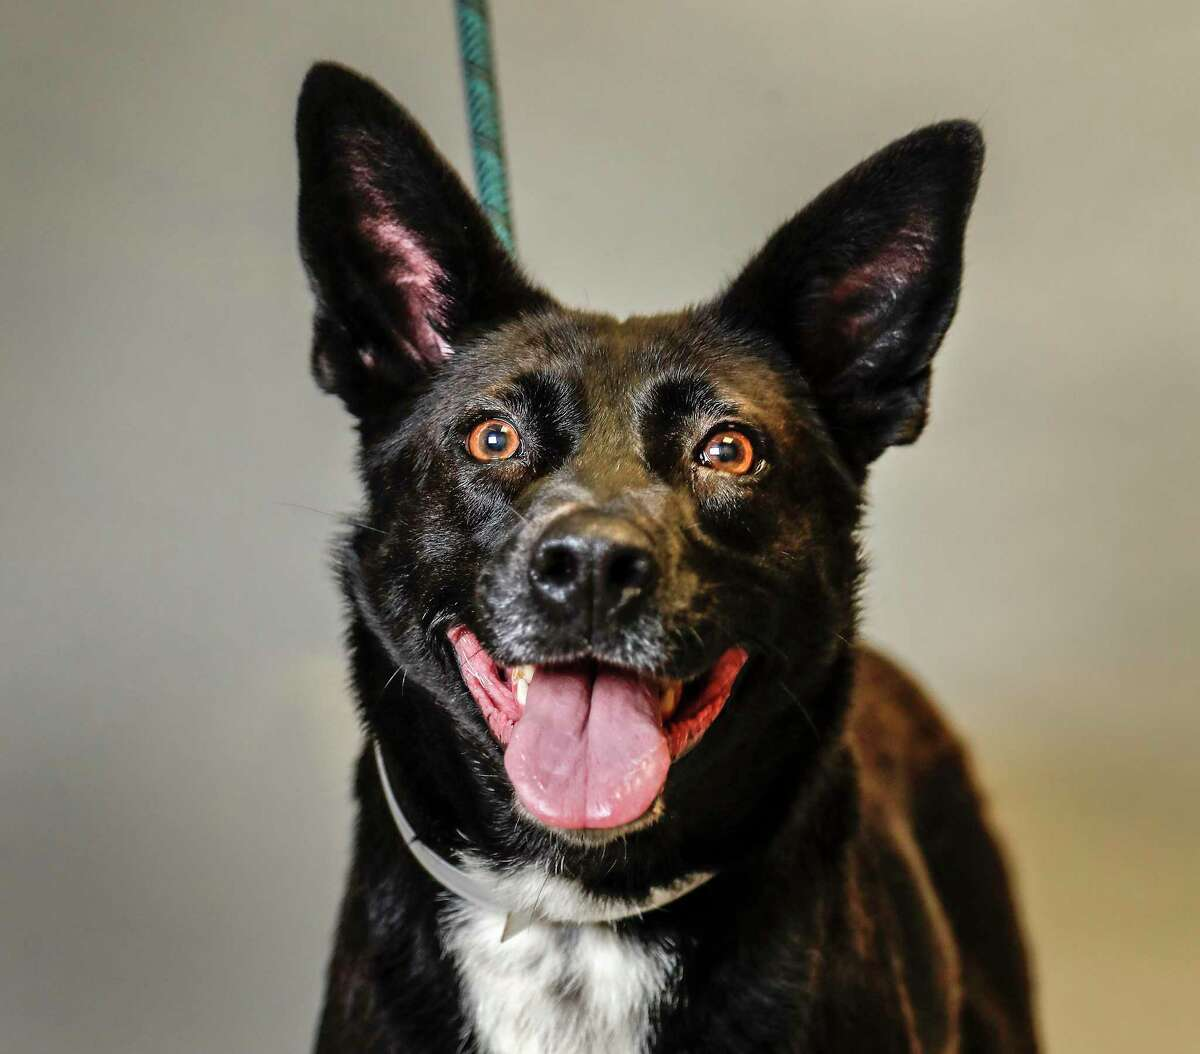 Montgomery County Animal Shelter will offer a low-cost spay and neuter clinic on Aug. 14 at the West County Community Center. Shown here is a dog that was up for adoption at the animal shelter in 2019.